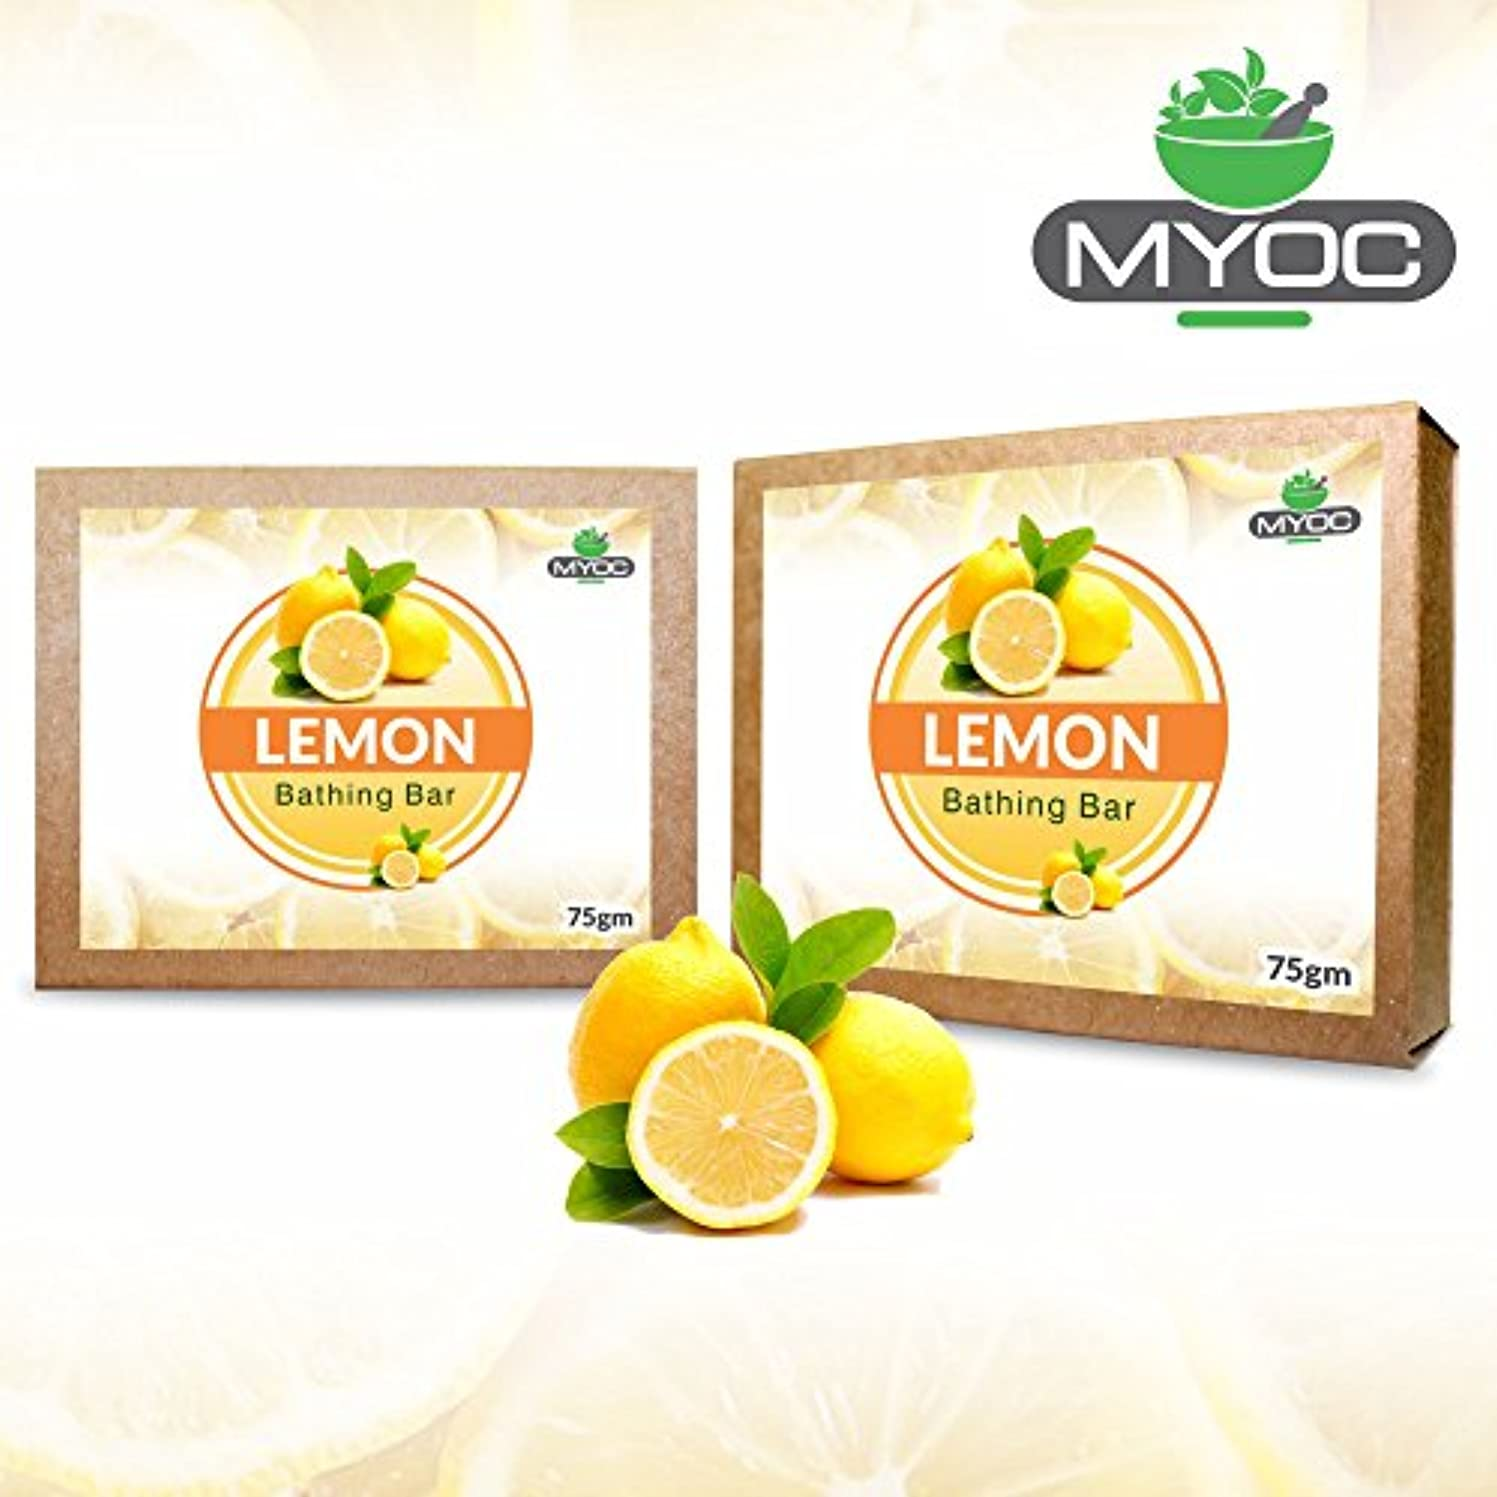 注釈元気なクラックポットLemon Oil And Vitamin E Astringent Soap, deodorant, antiseptic soap for clogged pores and acne prone skin 75g...